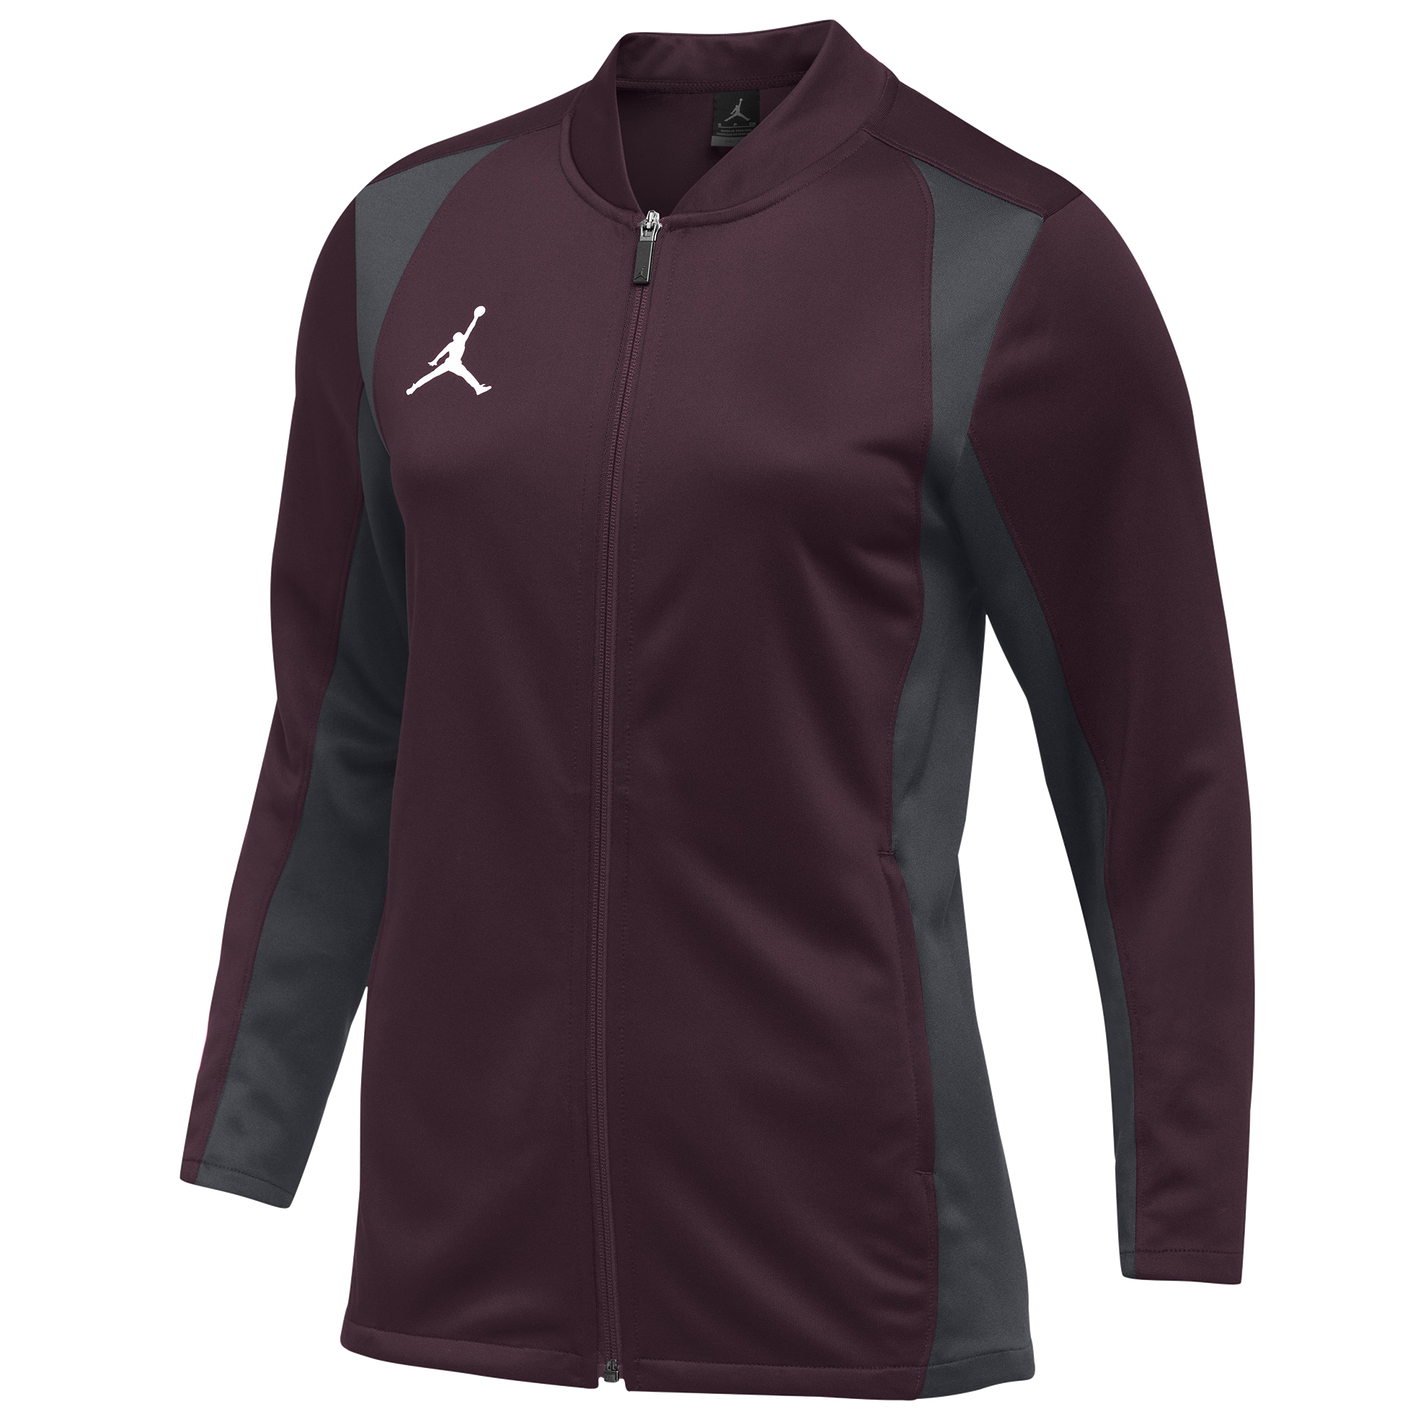 Jordan Team Basketball Flight Knit Jacket - Women s - Basketball ... 3f6239290a